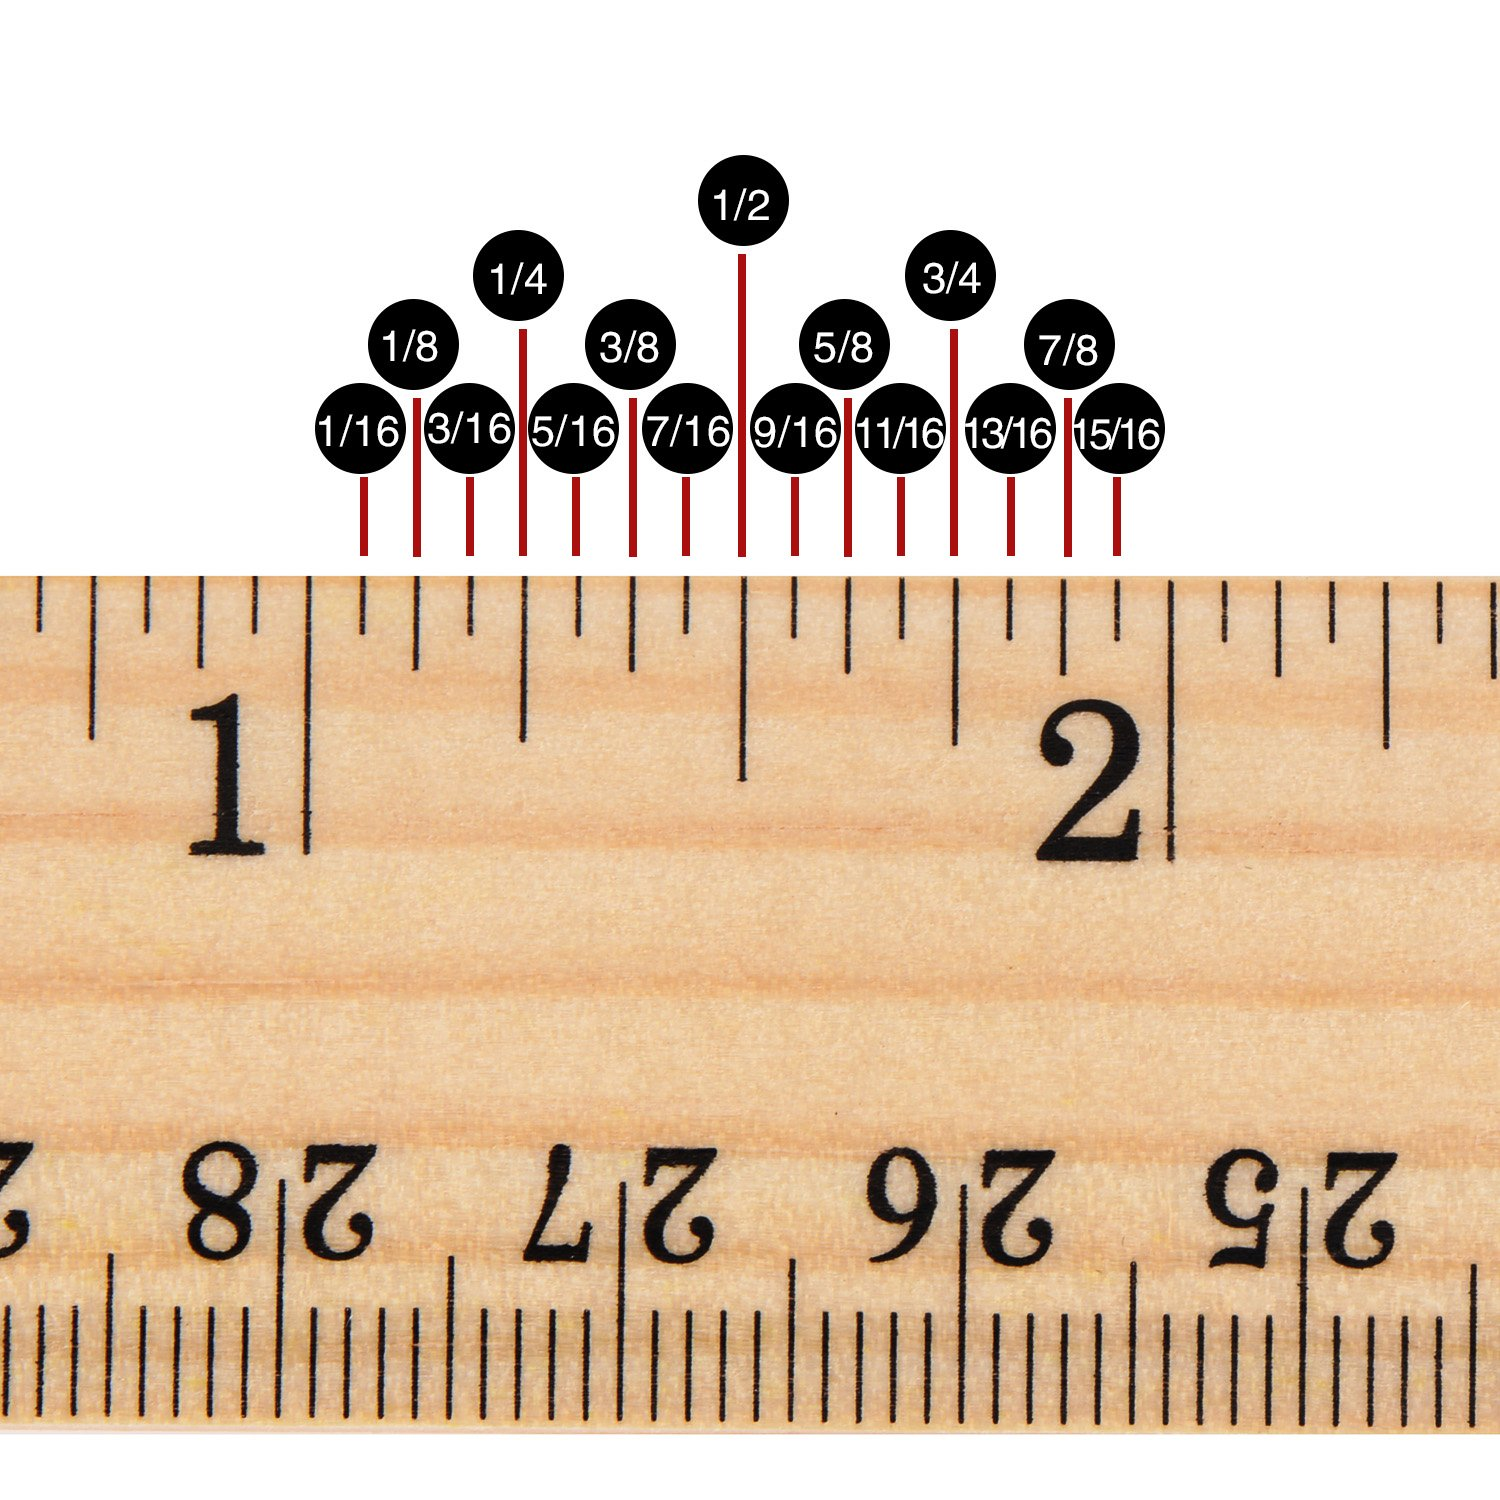 12 Inch and 30 cm 2 Scale 12 Pack Wood Ruler Student Rulers Wooden School Rulers Office Ruler Measuring Ruler